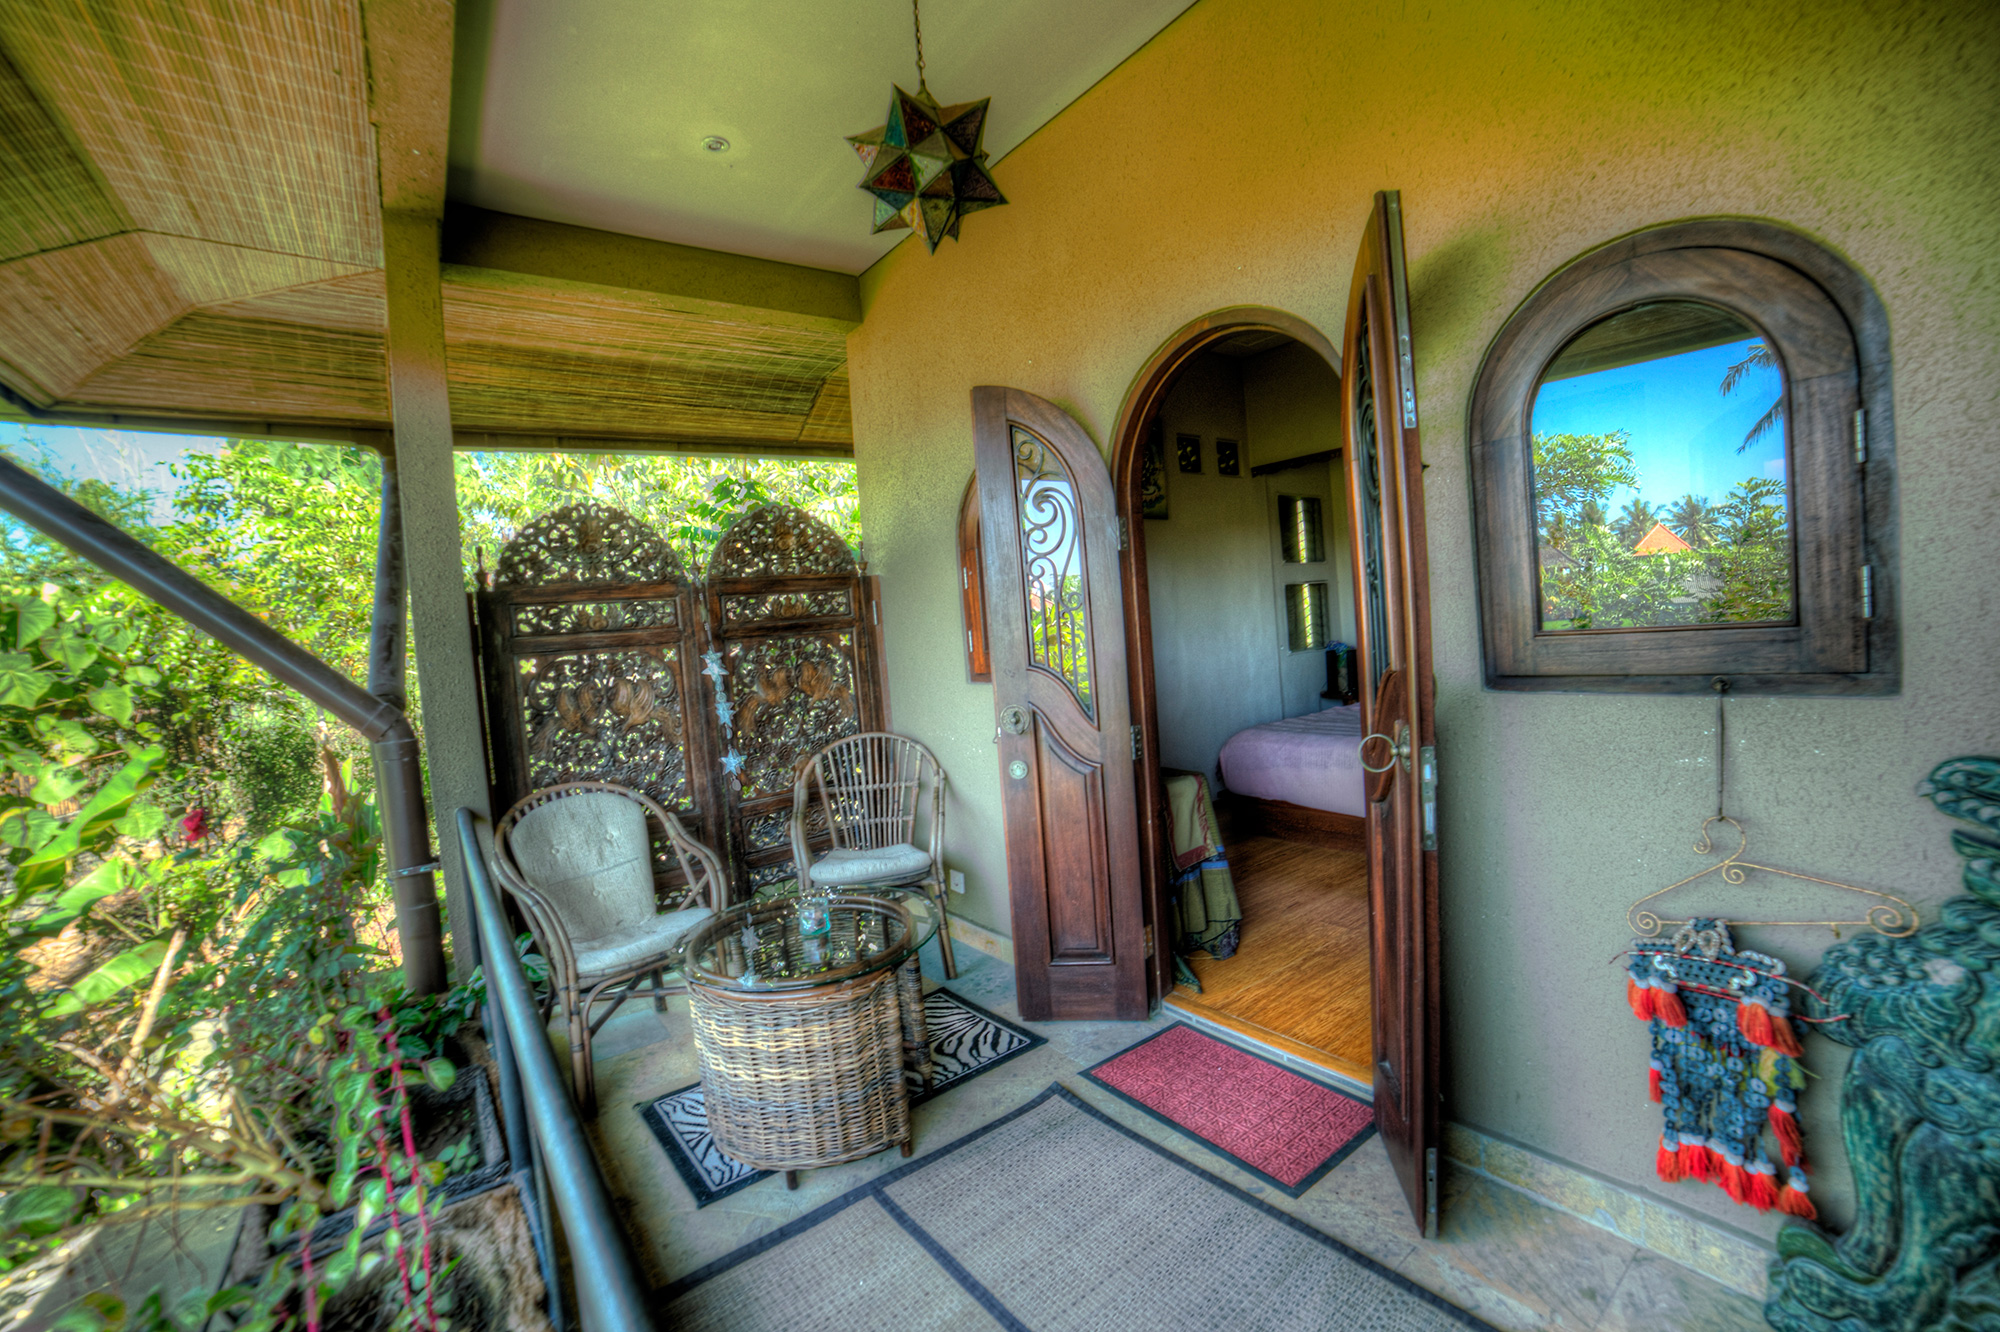 474A9023_4_5_tonemapped